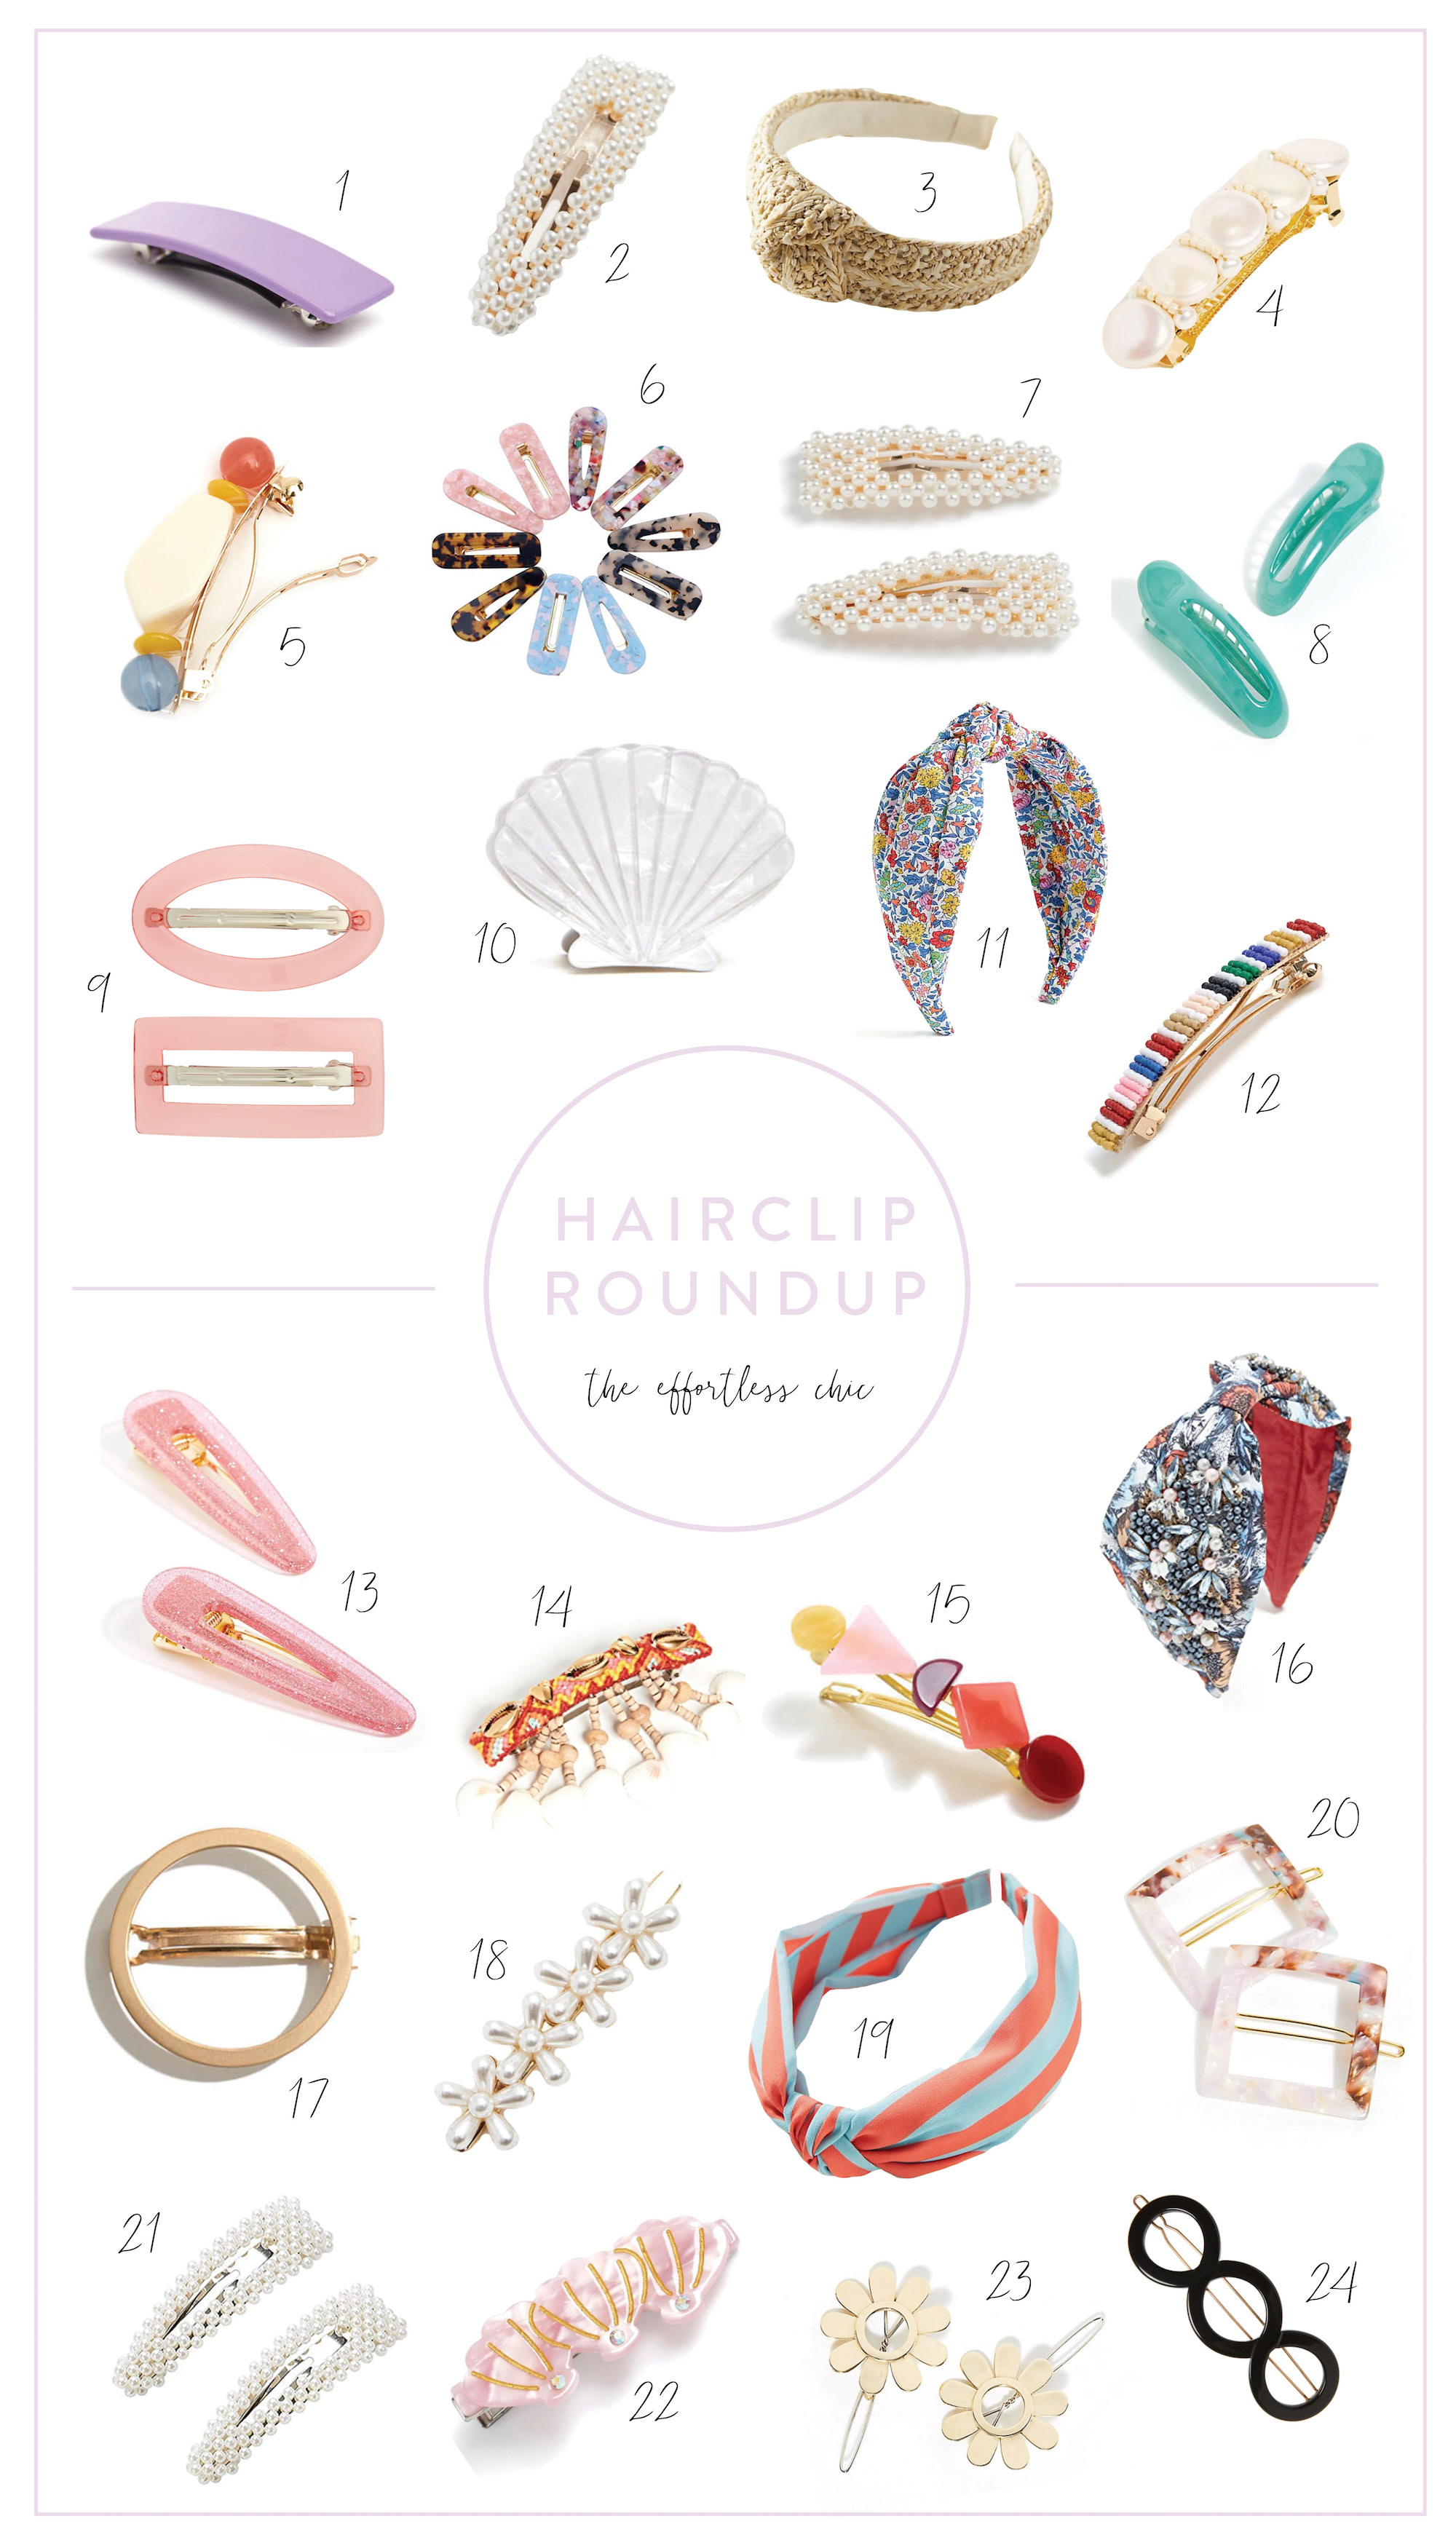 collage of fashionable hair clips